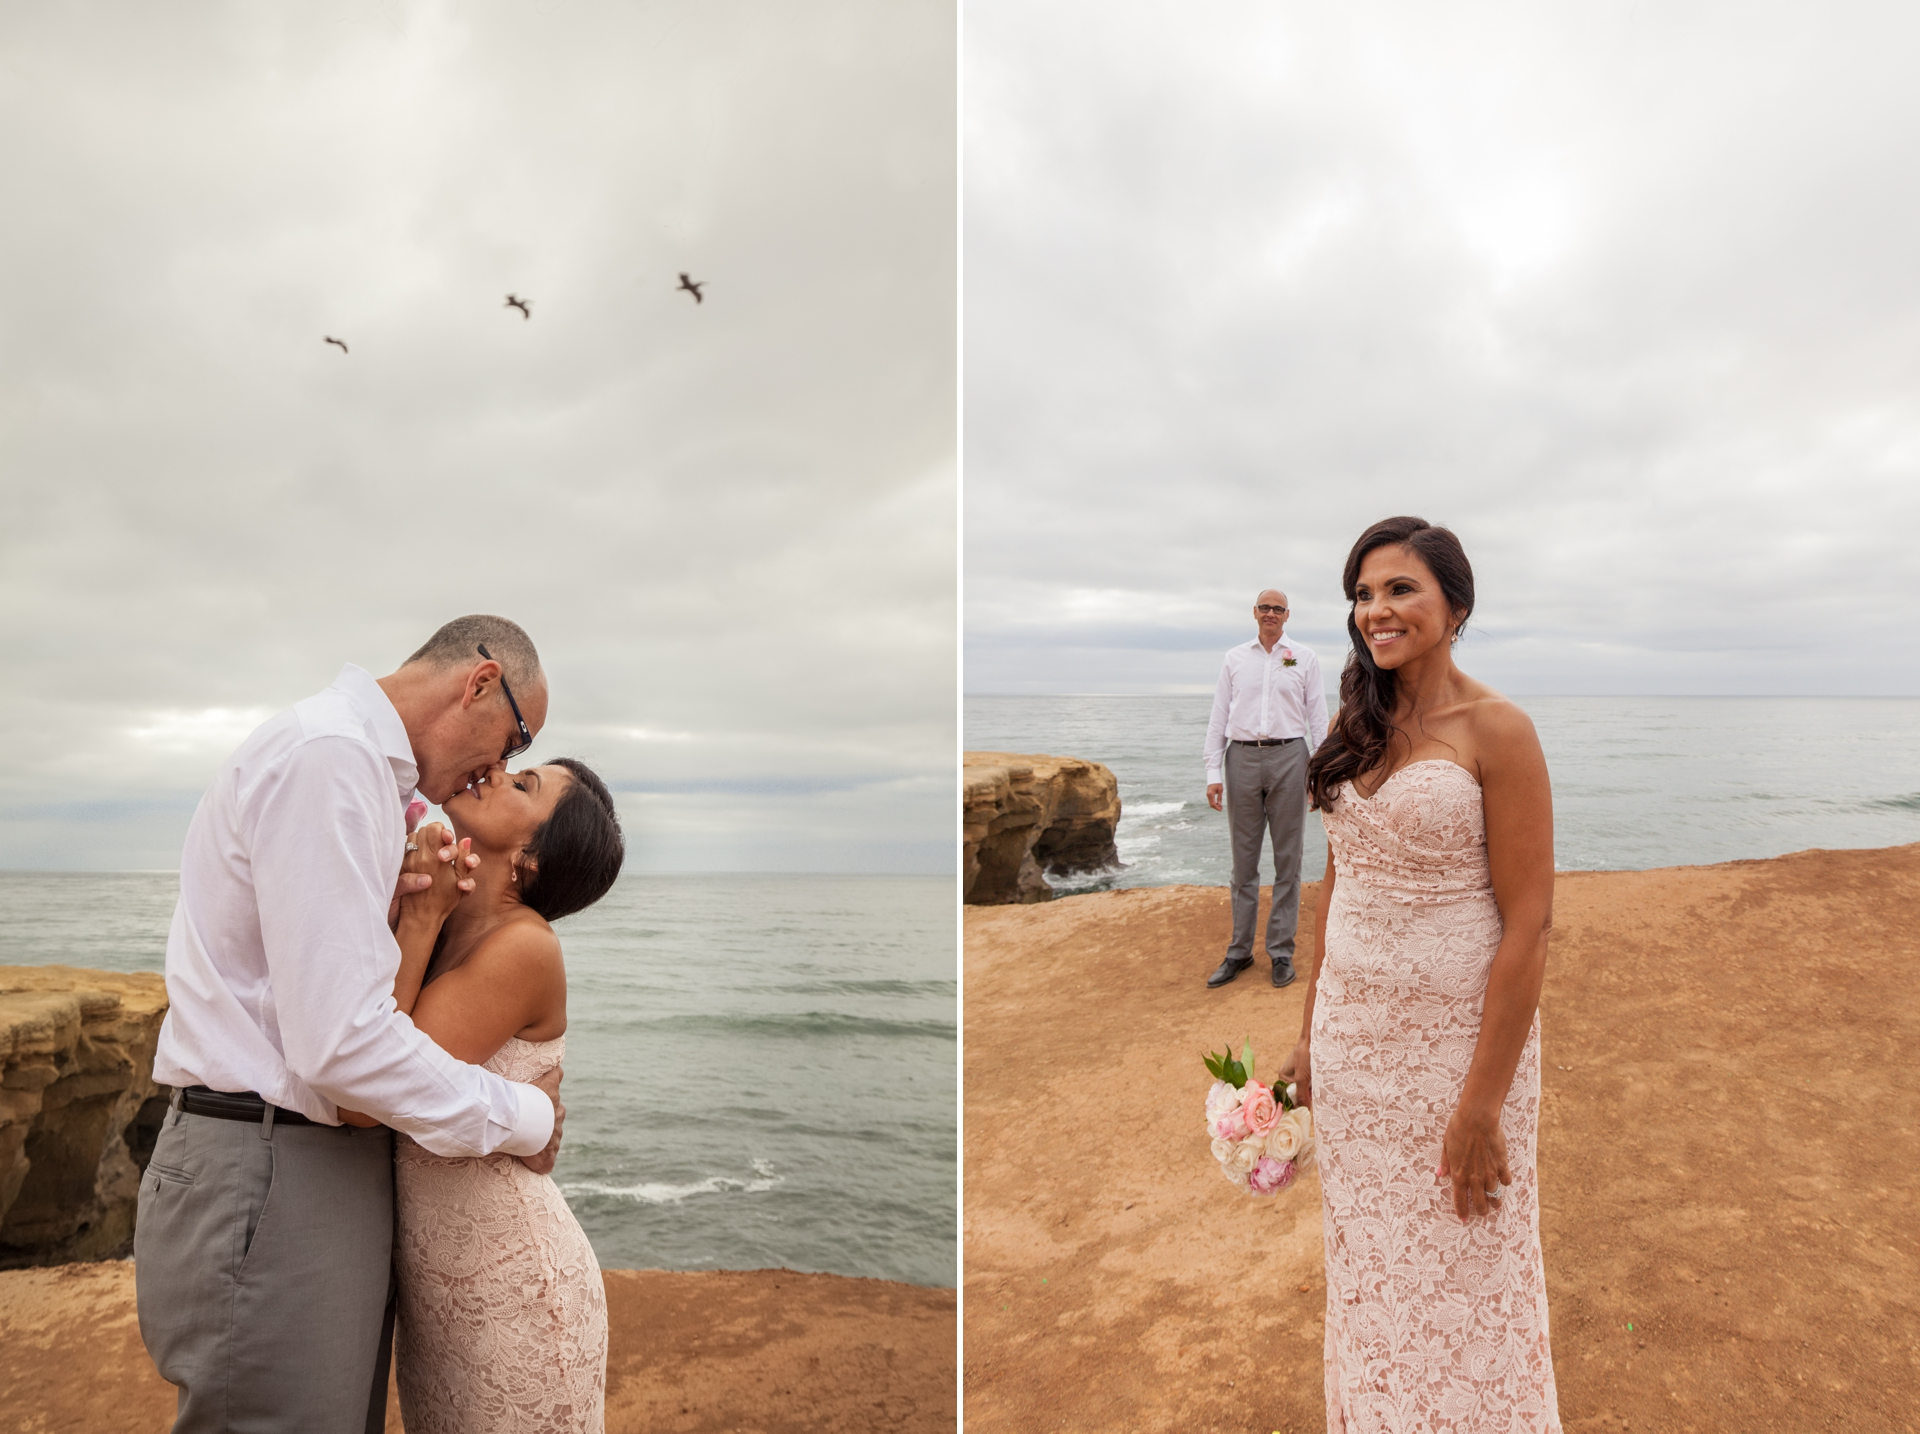 San Diego Elopement June by San Diego Wedding Photographers6.jpg